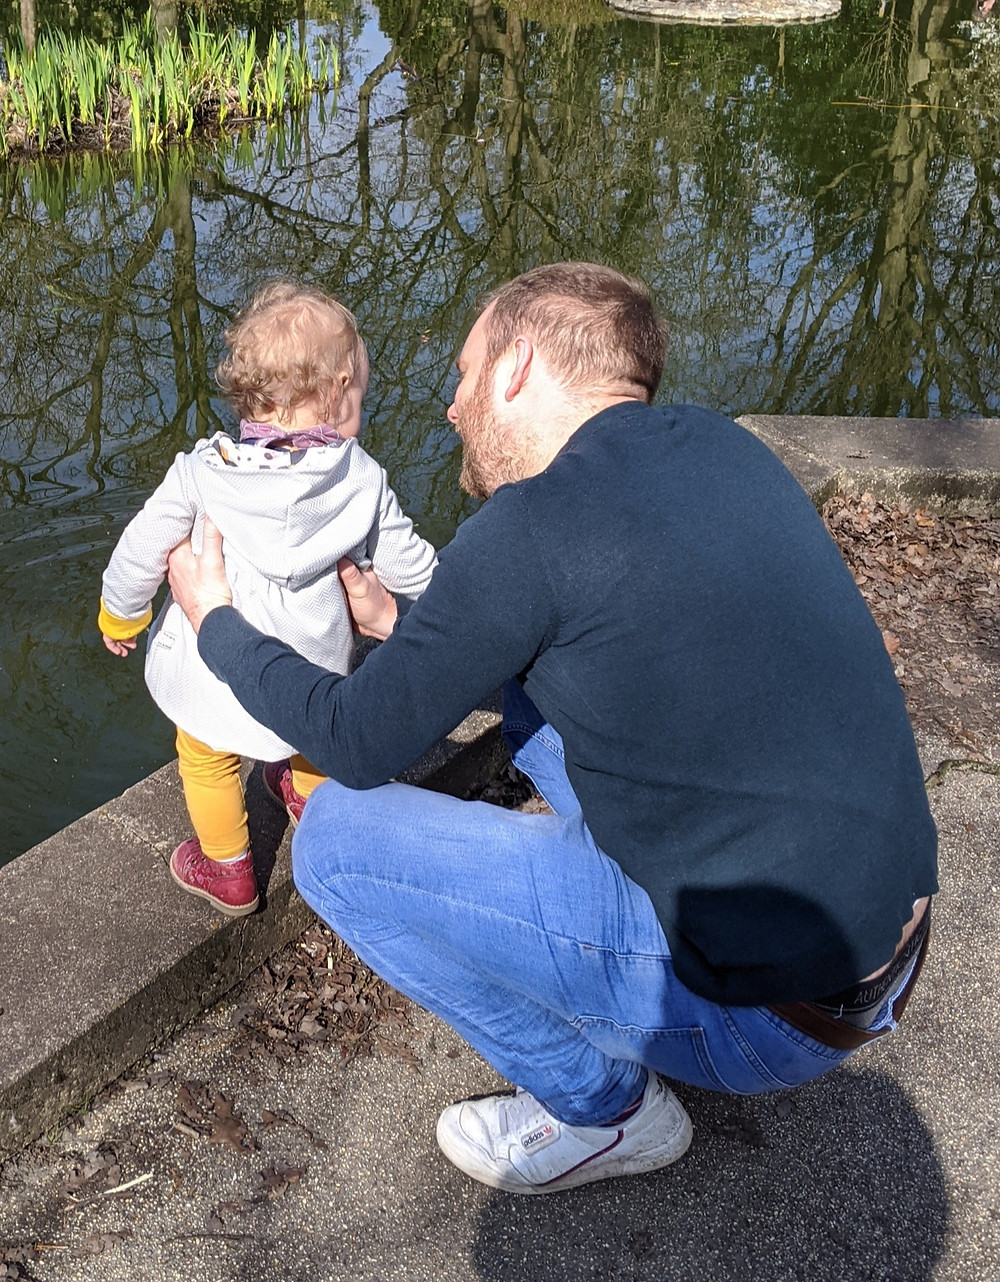 Dad and his baby girl looking for tadpoles in a pond